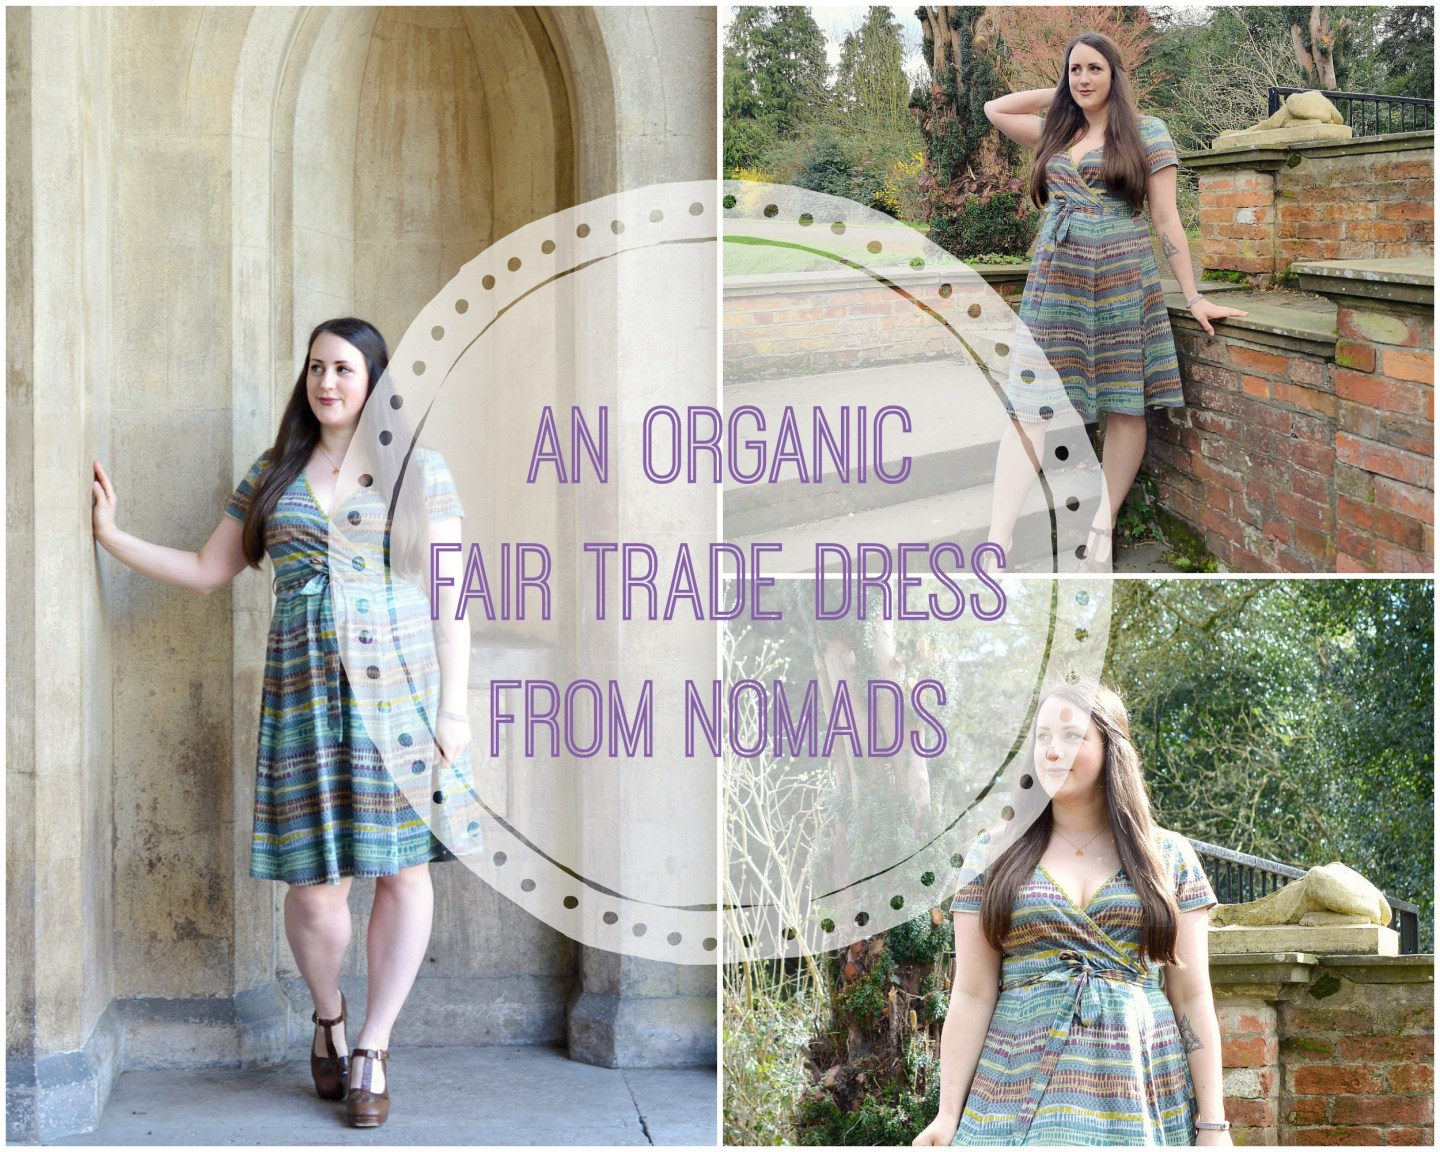 An Organic Fair Trade Dress for Summer